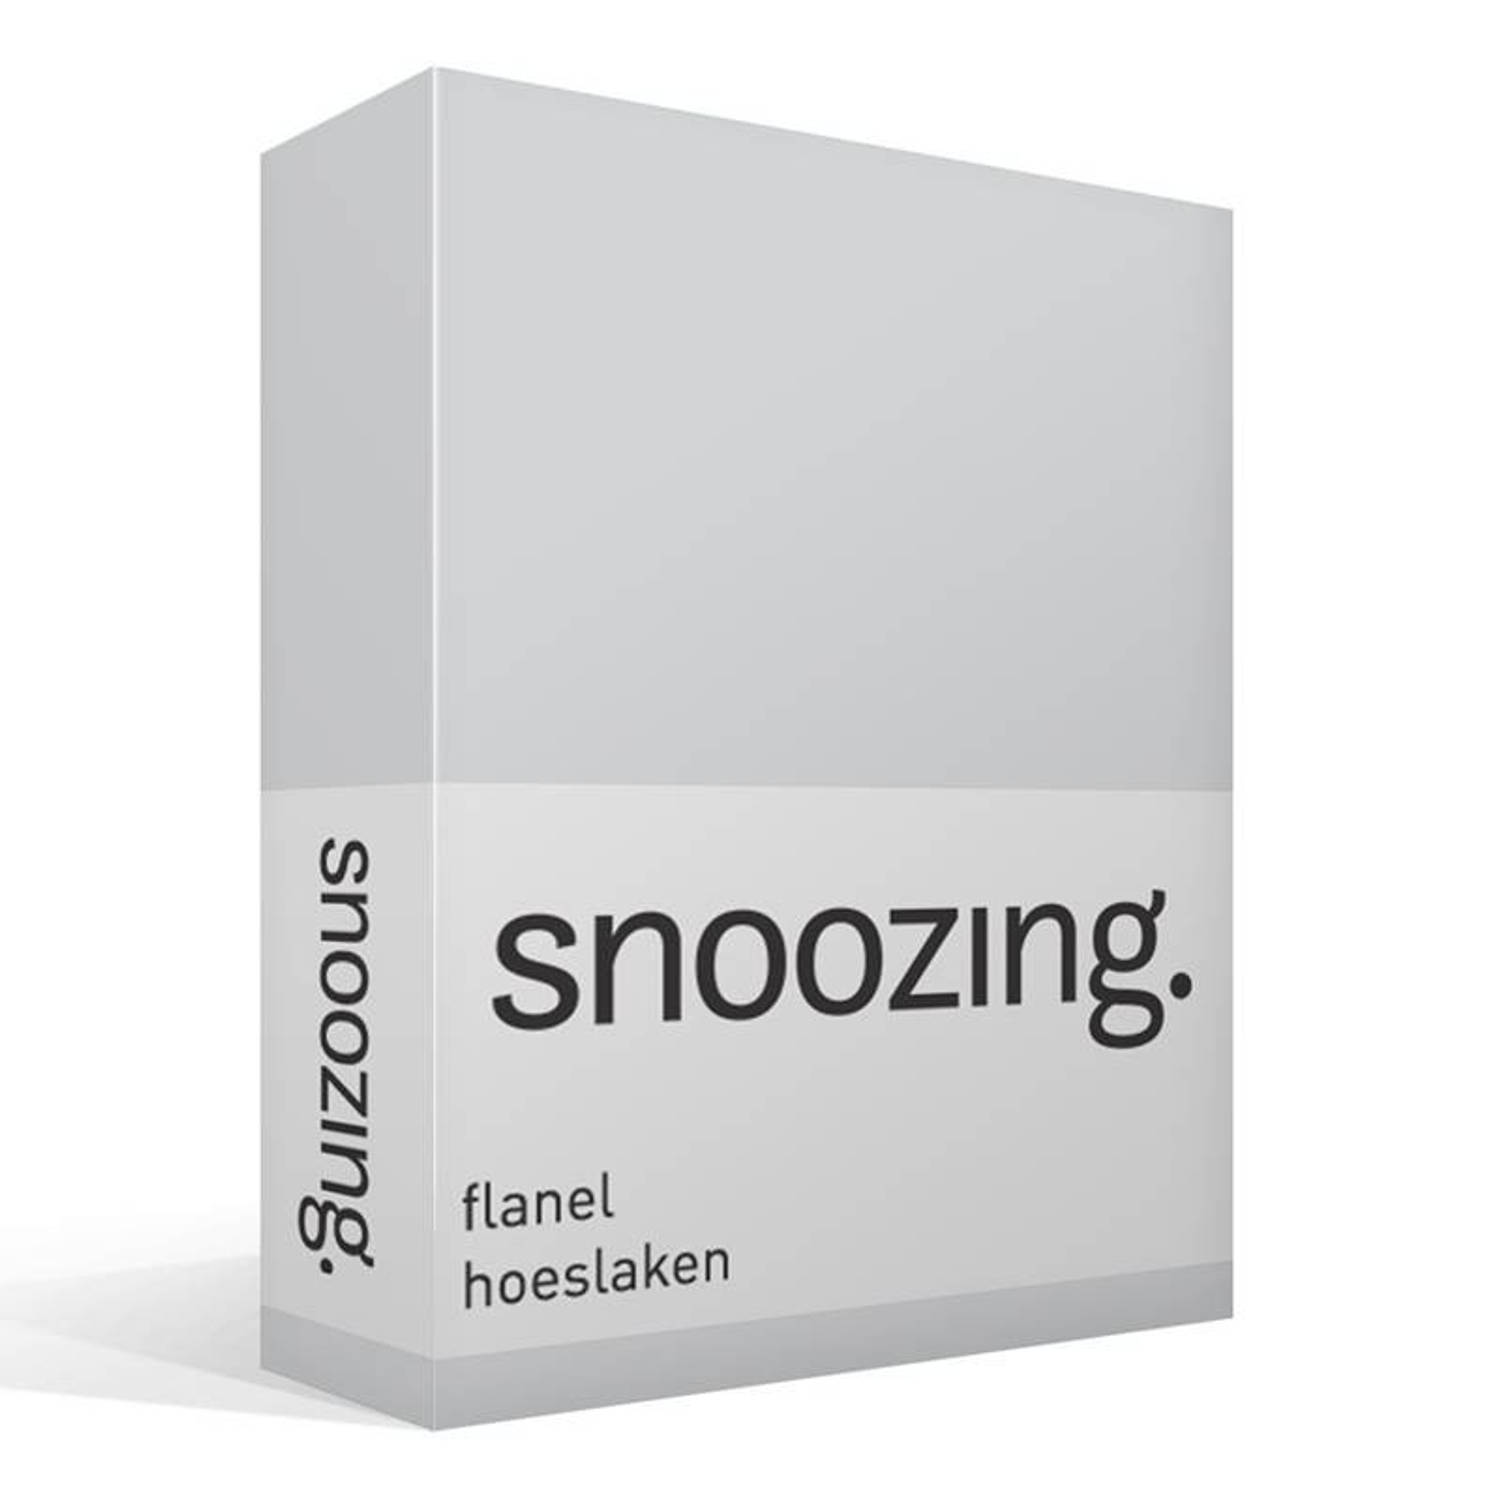 Snoozing flanel hoeslaken - lits-jumeaux (160x200 cm)